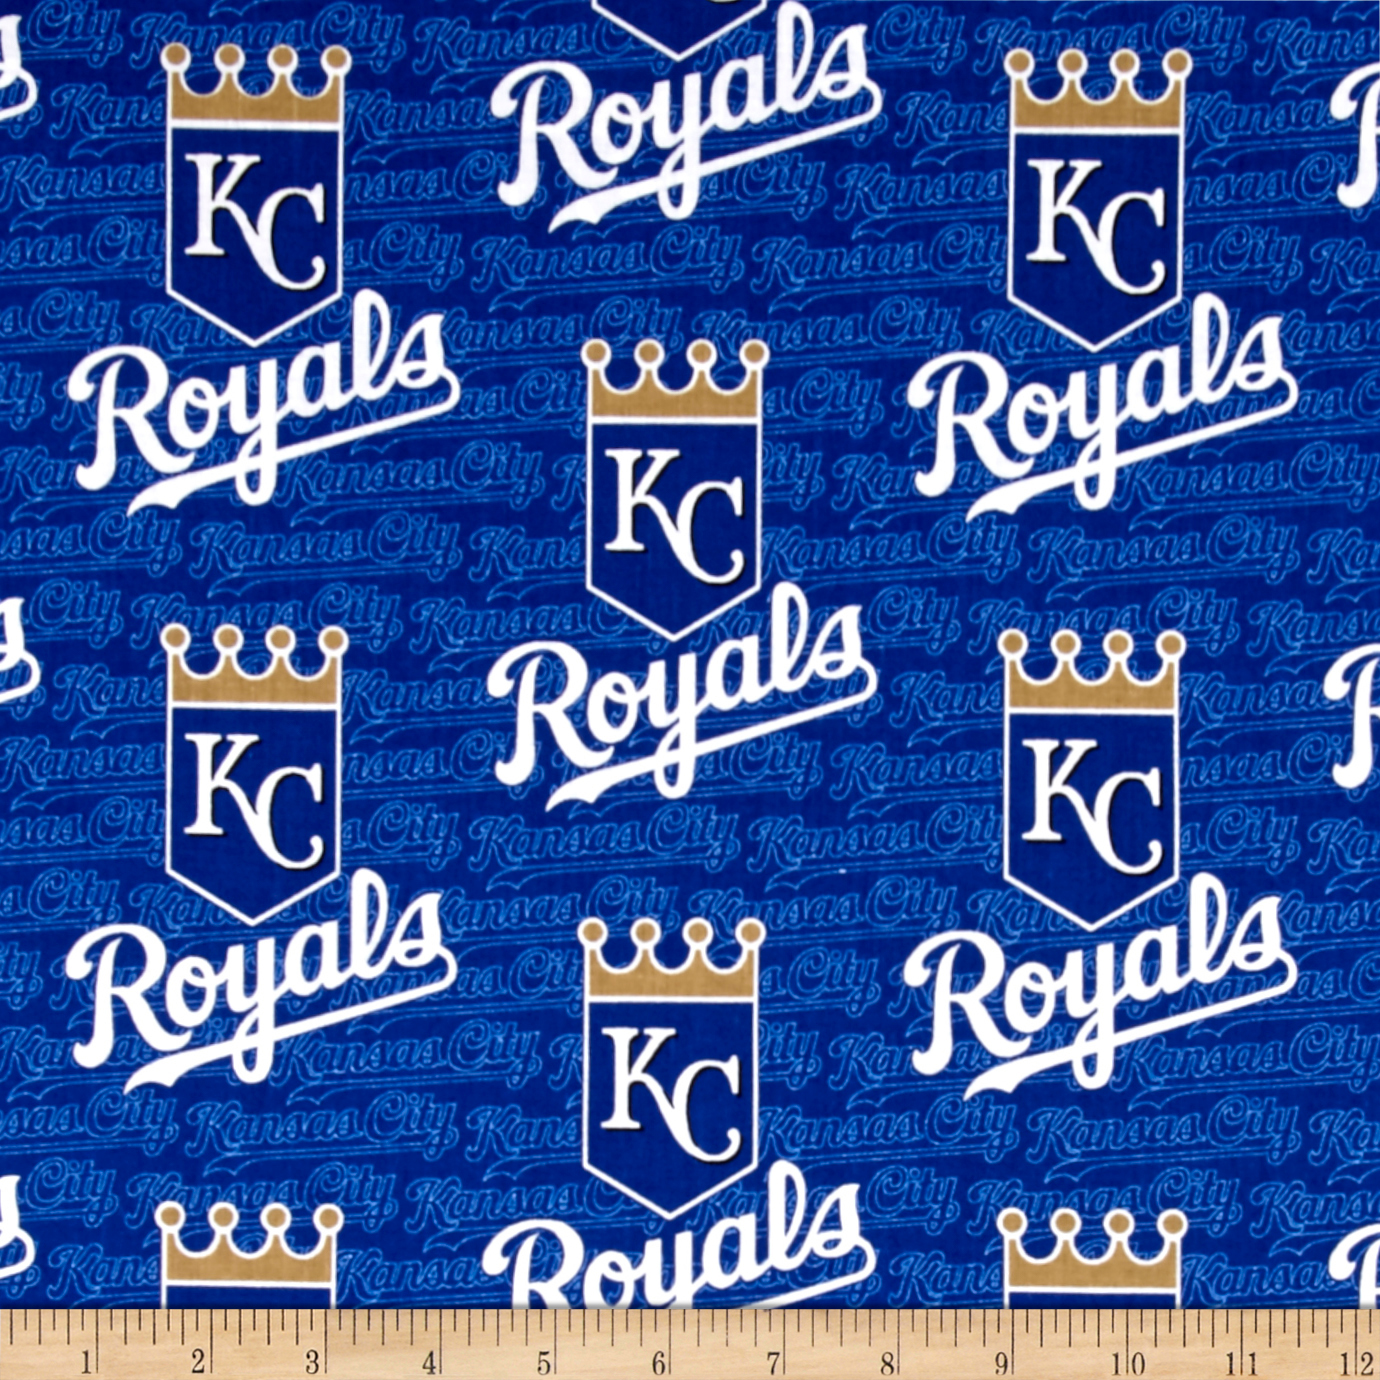 Kansas City Royals Cotton Broadcloth Blue Fabric by Fabric Traditions in USA